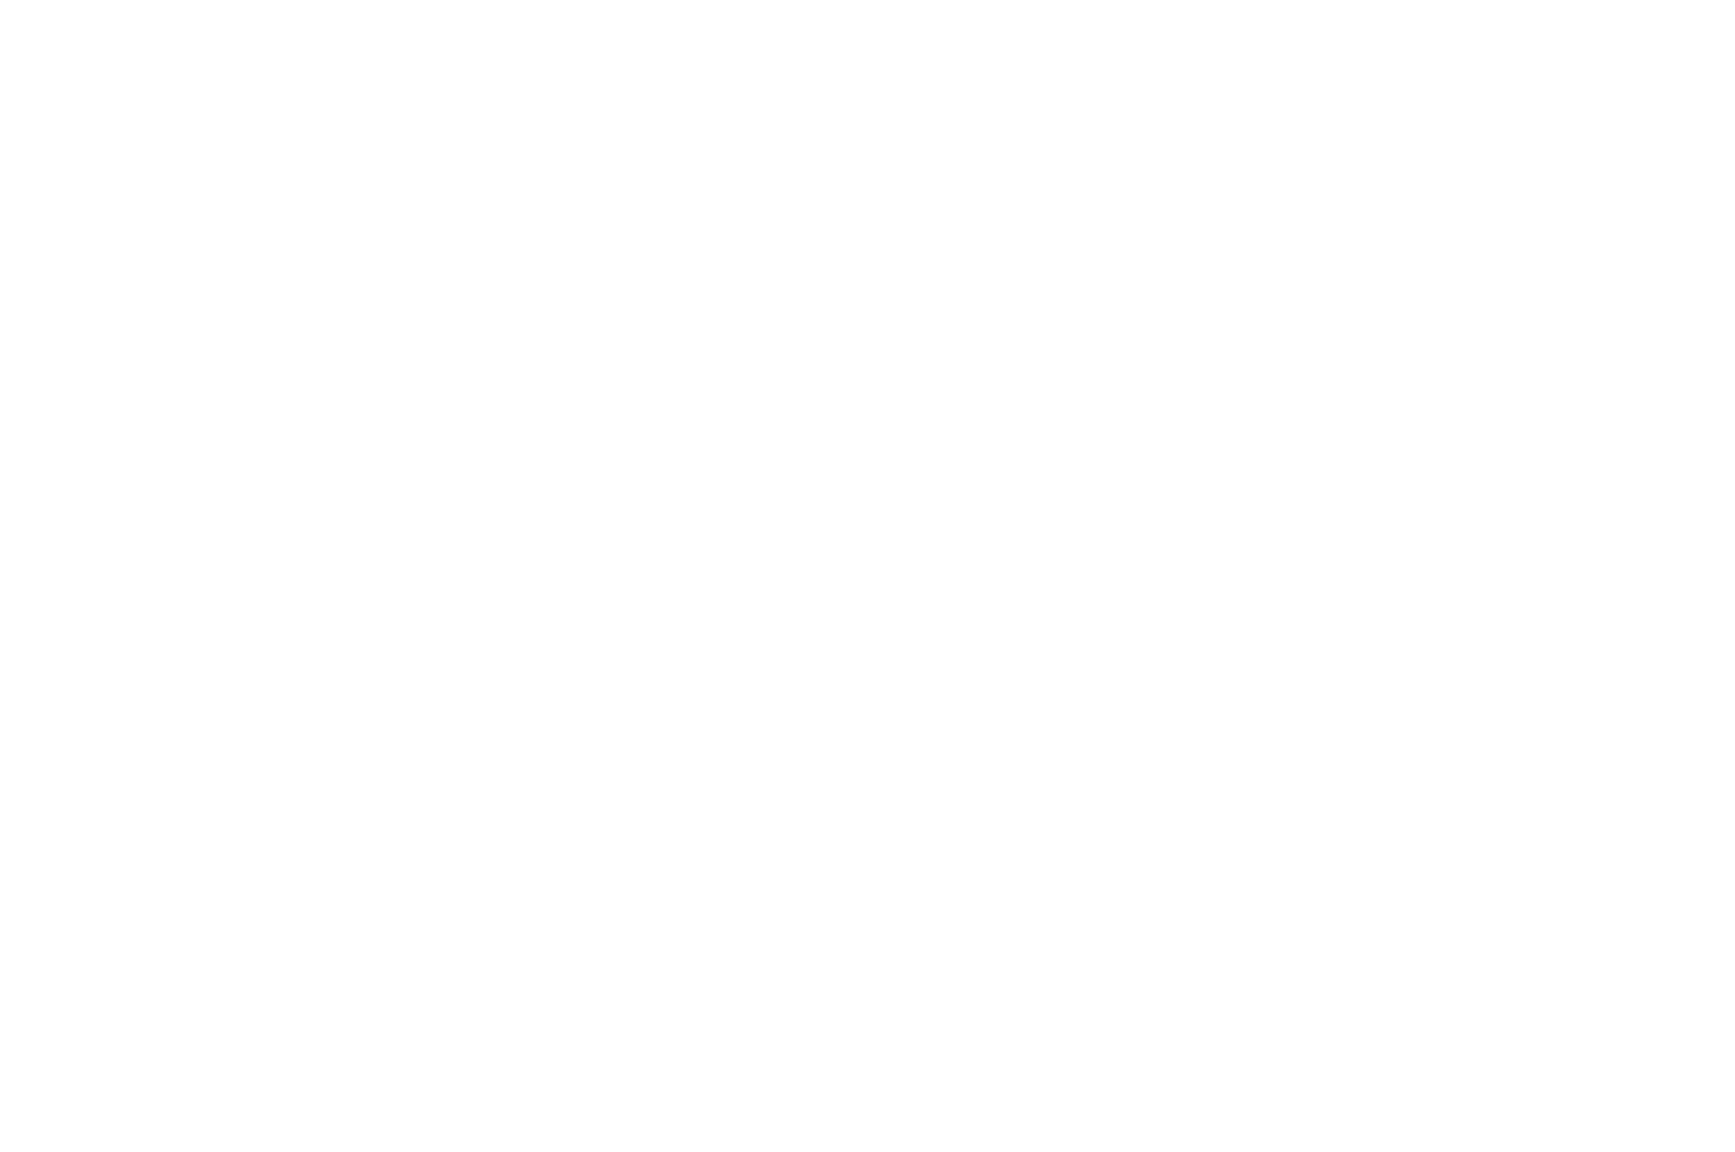 Christian Worldview Film Festival Best Gospel Presentation Award